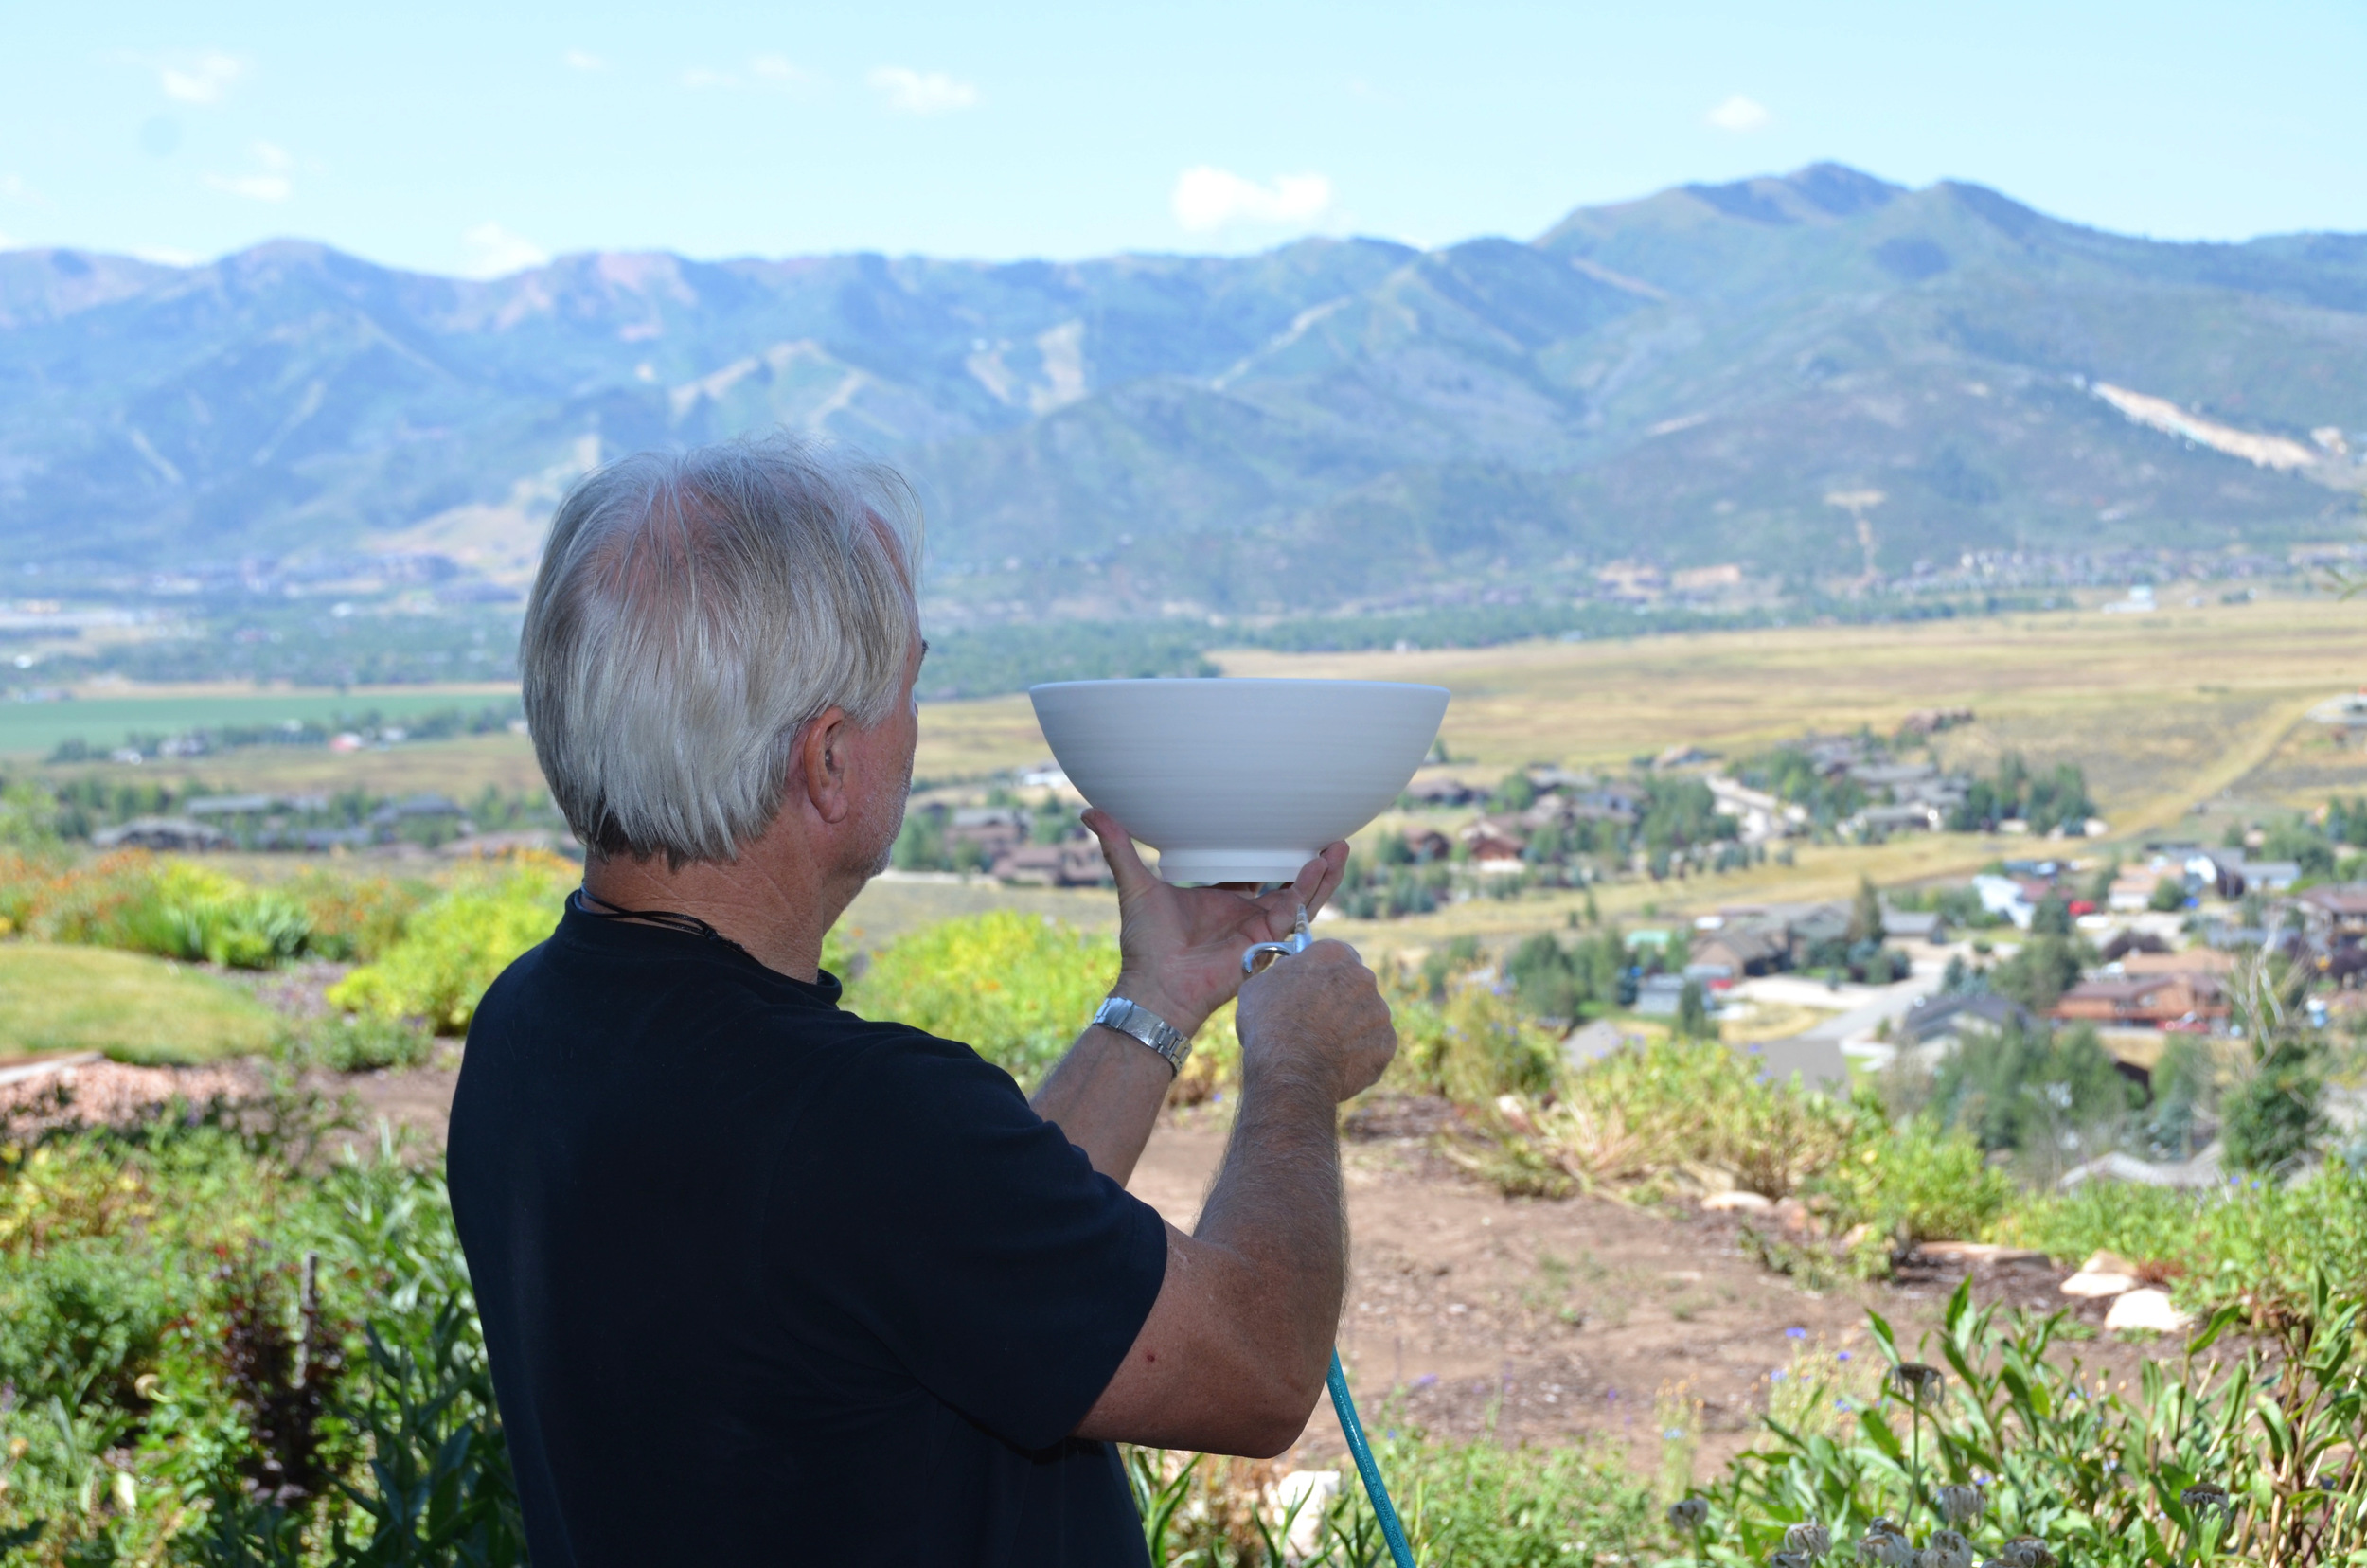 David Caldwell in their Park City Studio, preparing their porcelain pieces for hand glazing and cone 10 firing | Caldwell Pottery